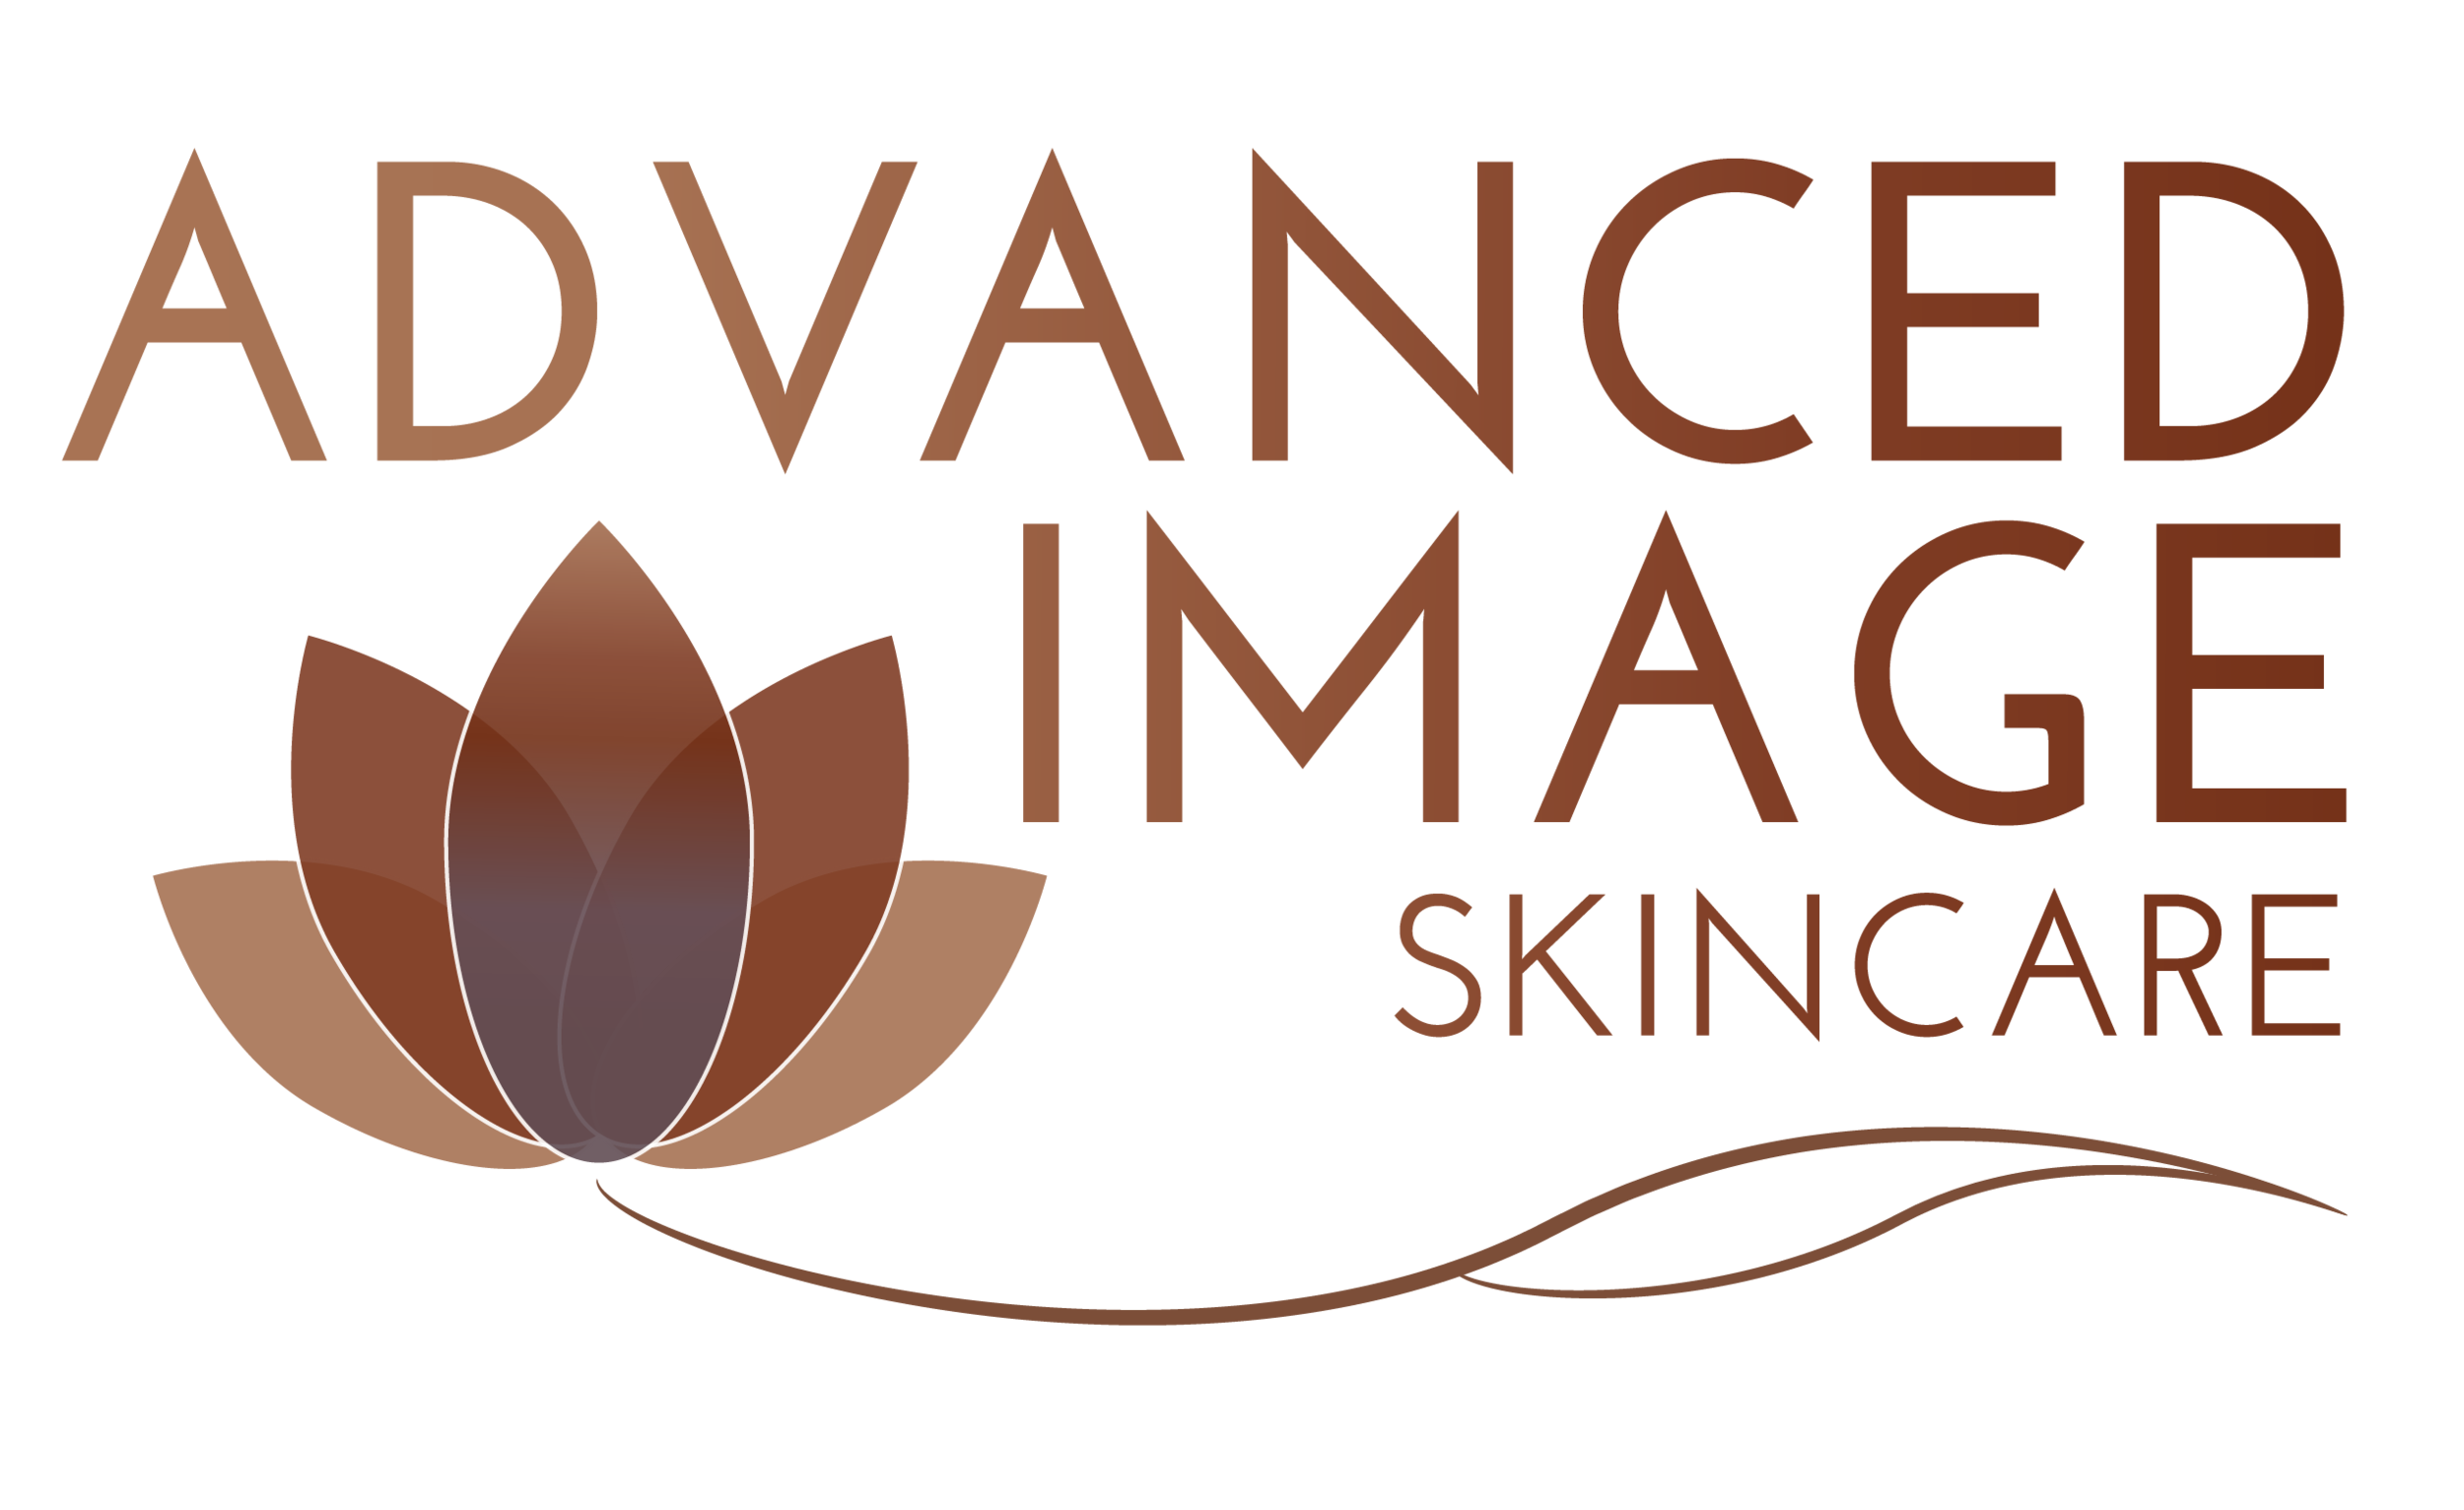 ADVANCED IMAGE: MEDICAL SPA LOGO